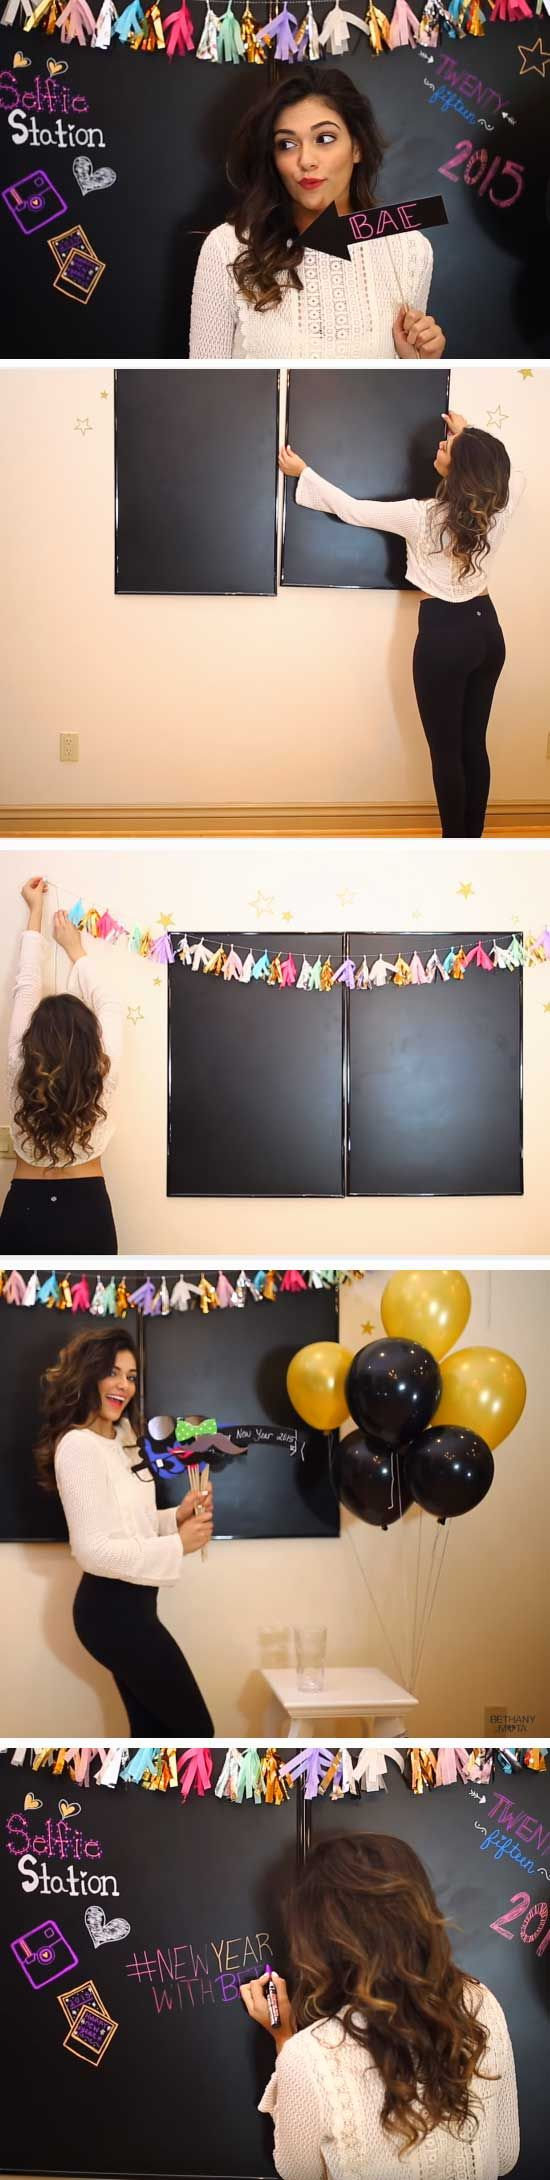 Selfie Station | 20 + Last Minute New Years Eve Party Ideas